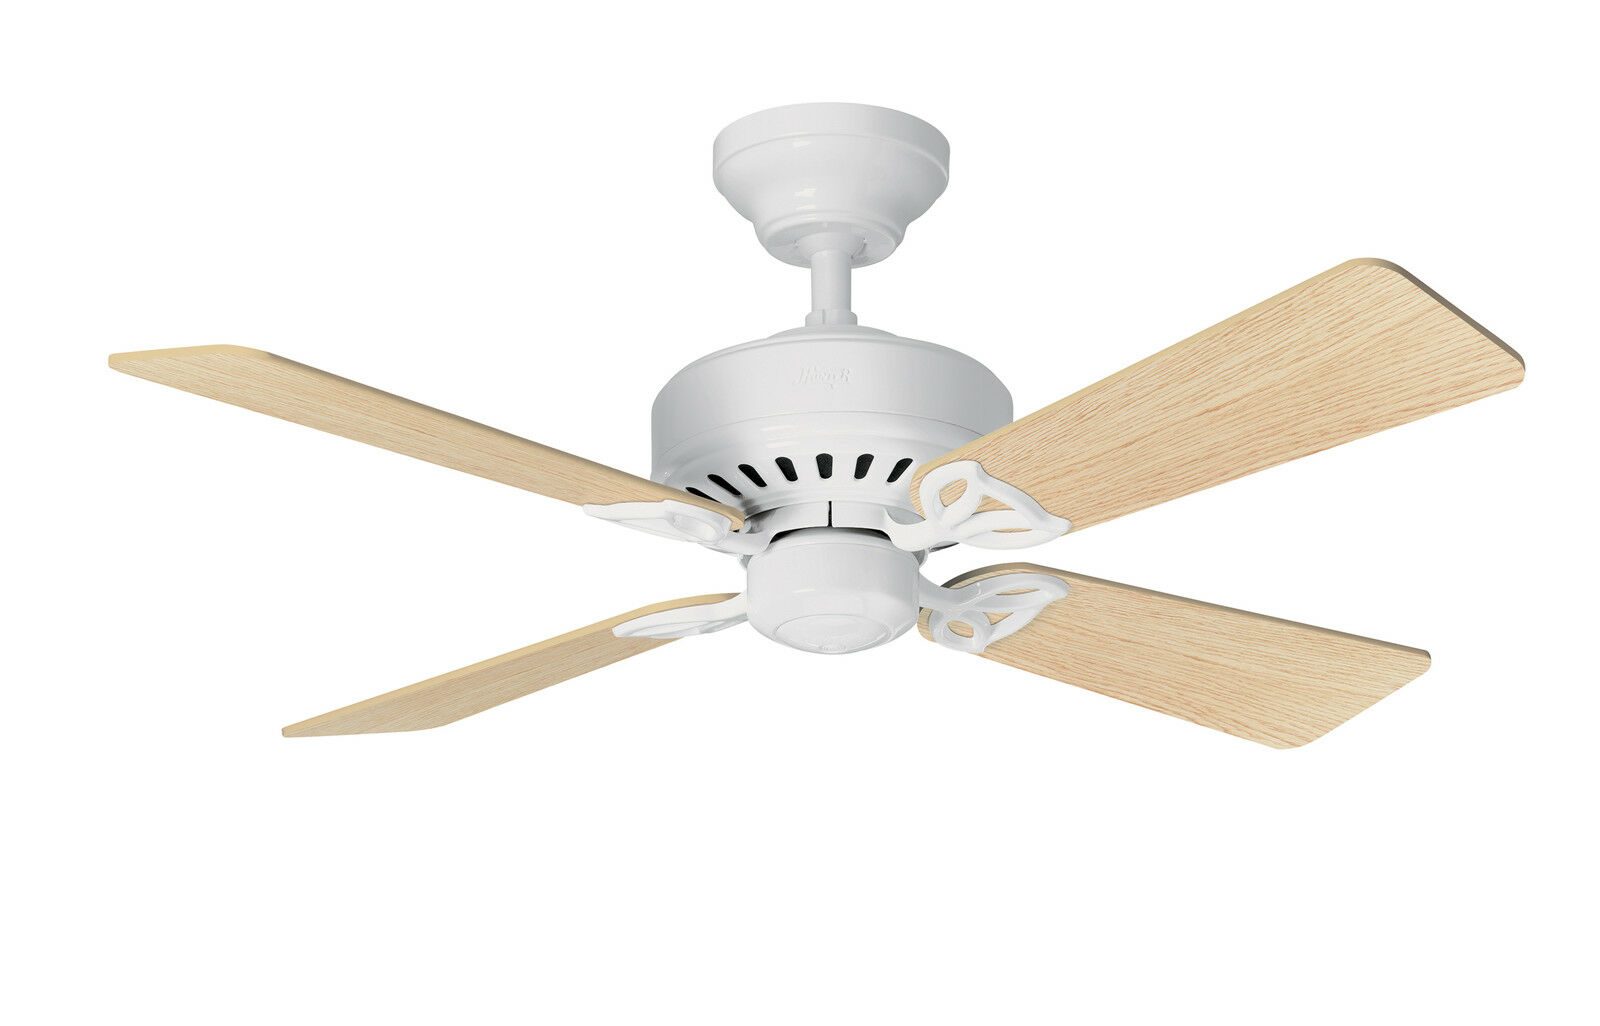 ceiling fan 4 blades. brand new: lowest price ceiling fan 4 blades